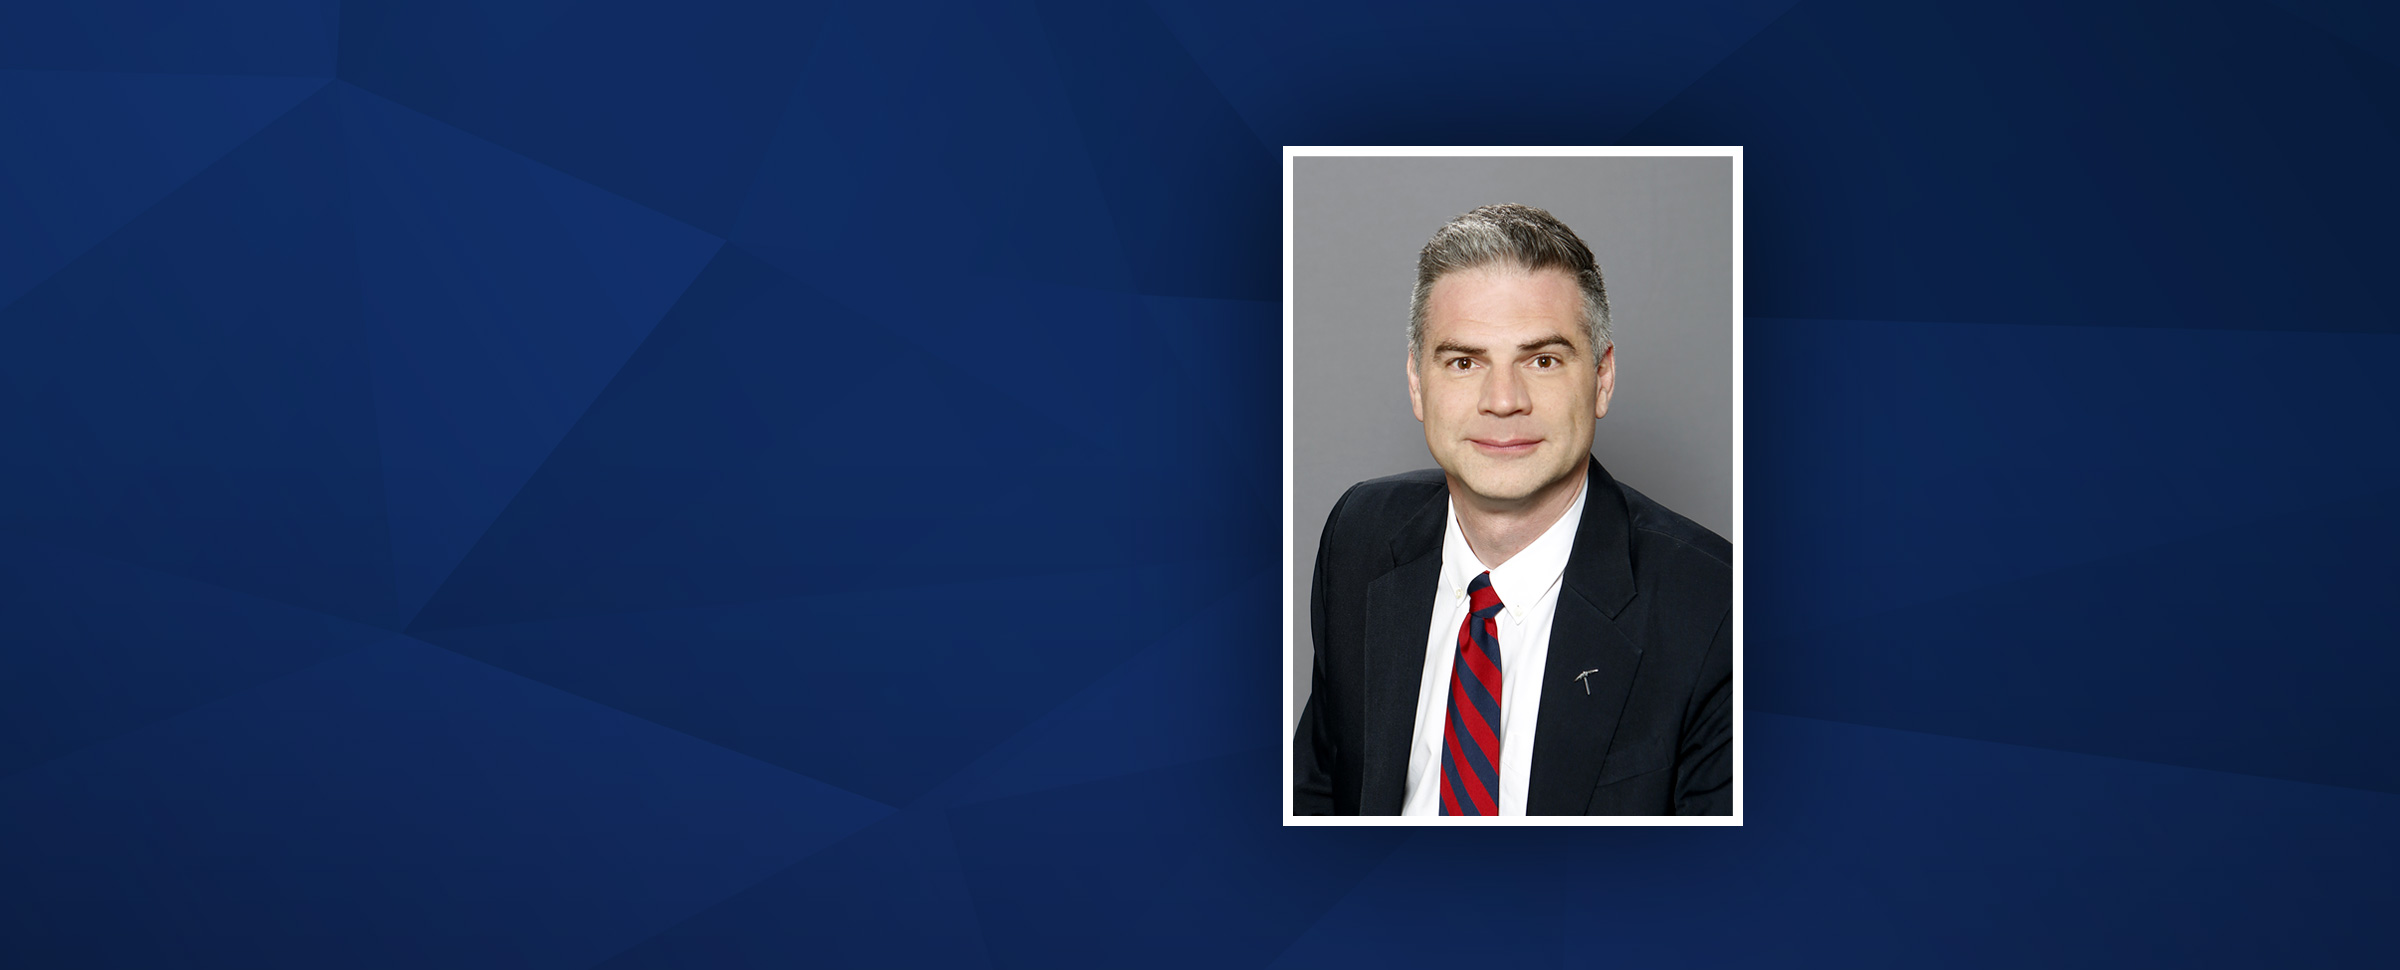 UTEP Names John Wiebe Vice President for Academic Affairs and Provost